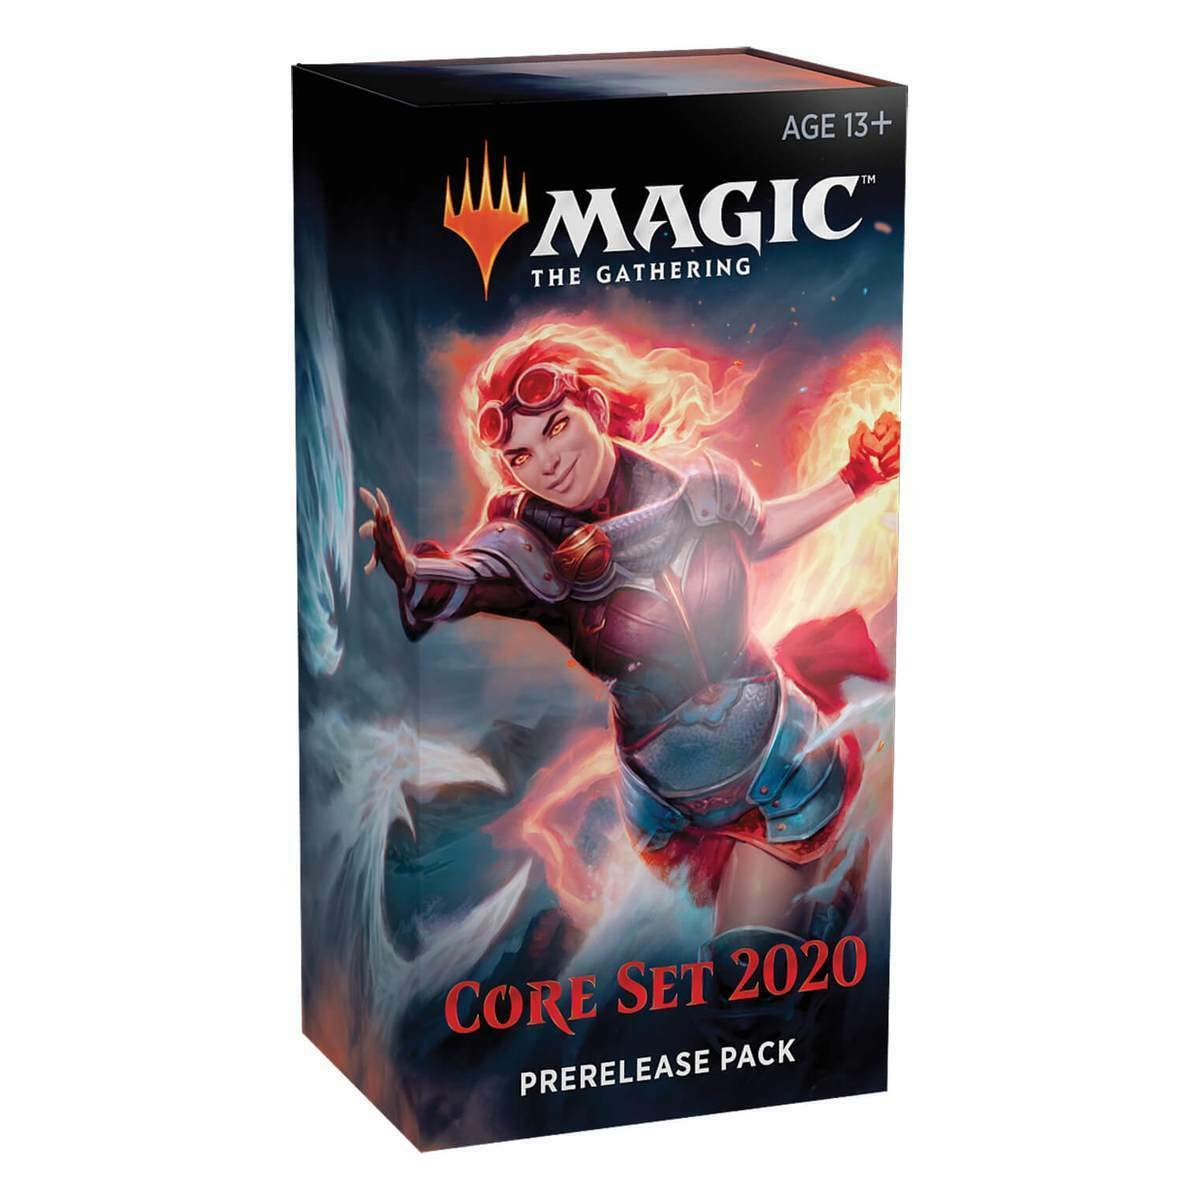 Core Set 2020 Prerelease Pack